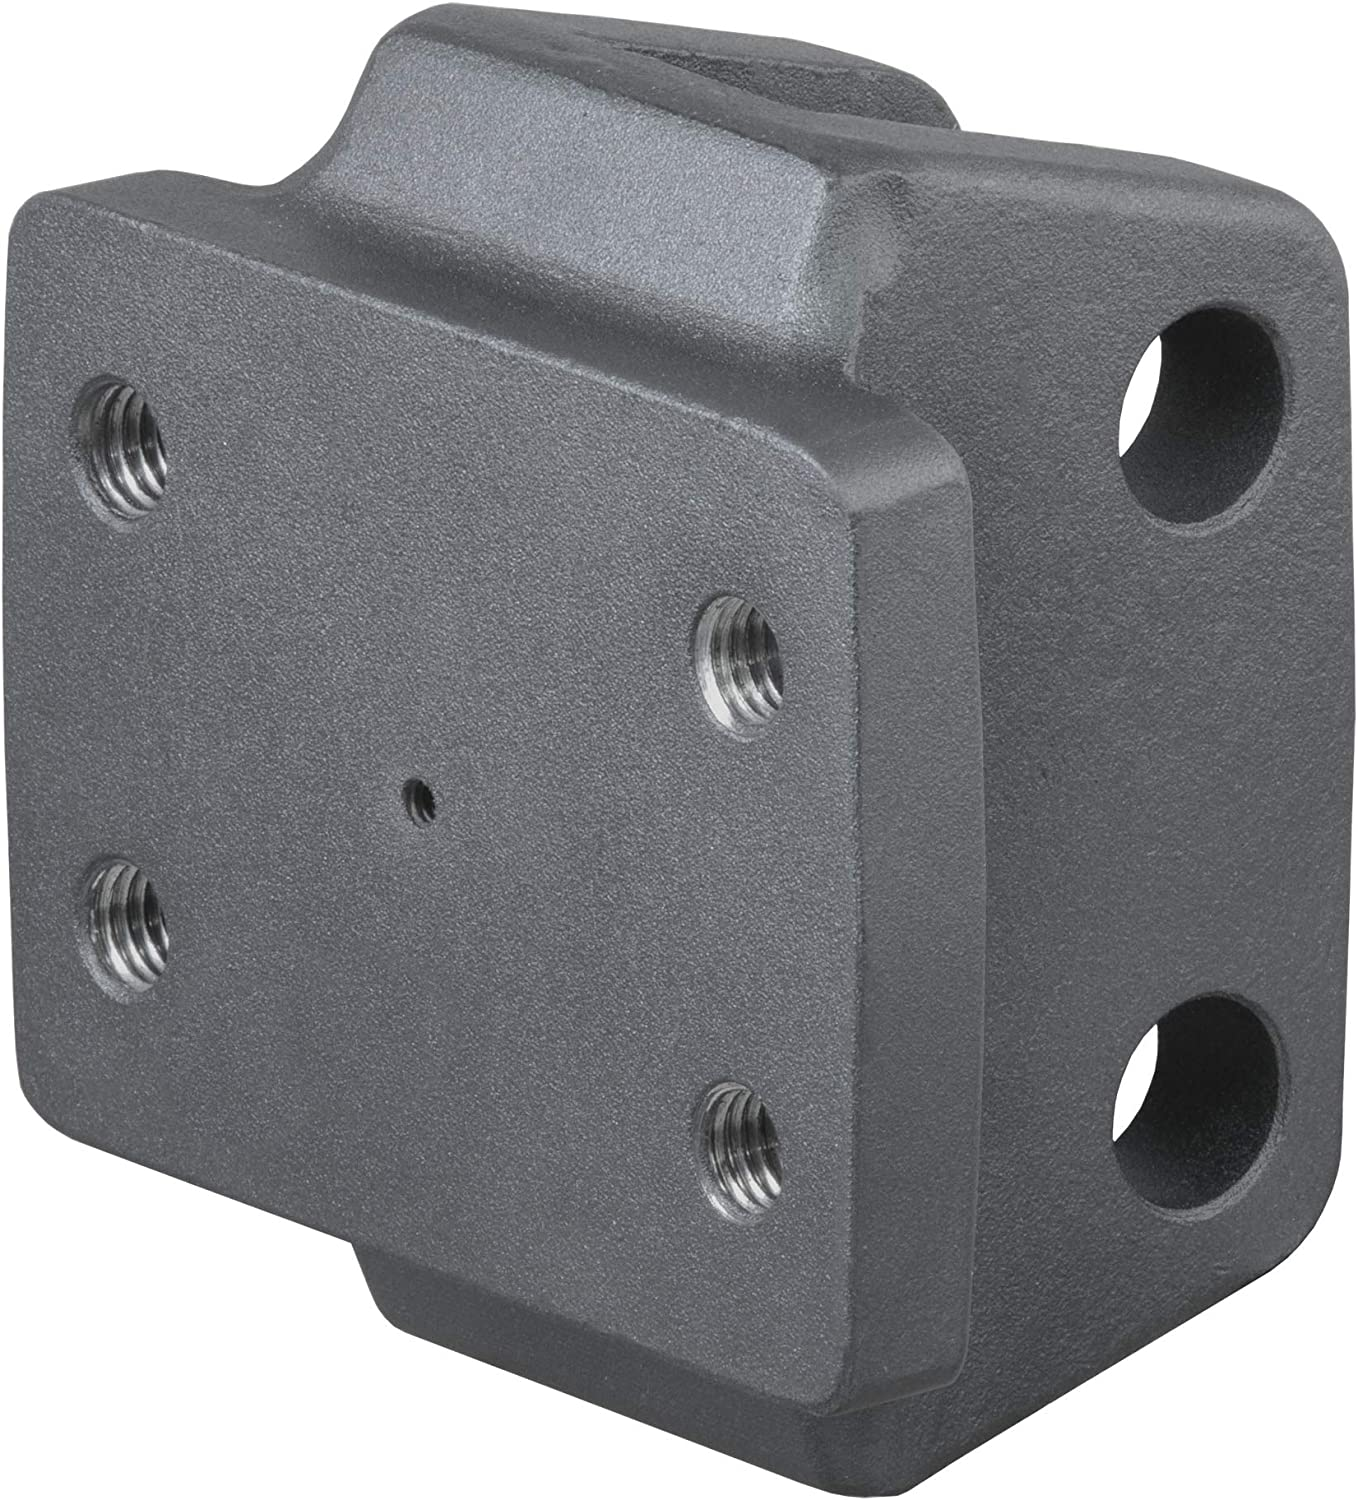 Shank Required CURT 45950 Rebellion XD Adjustable Cushion Hitch Pintle Mount Plate Attachment